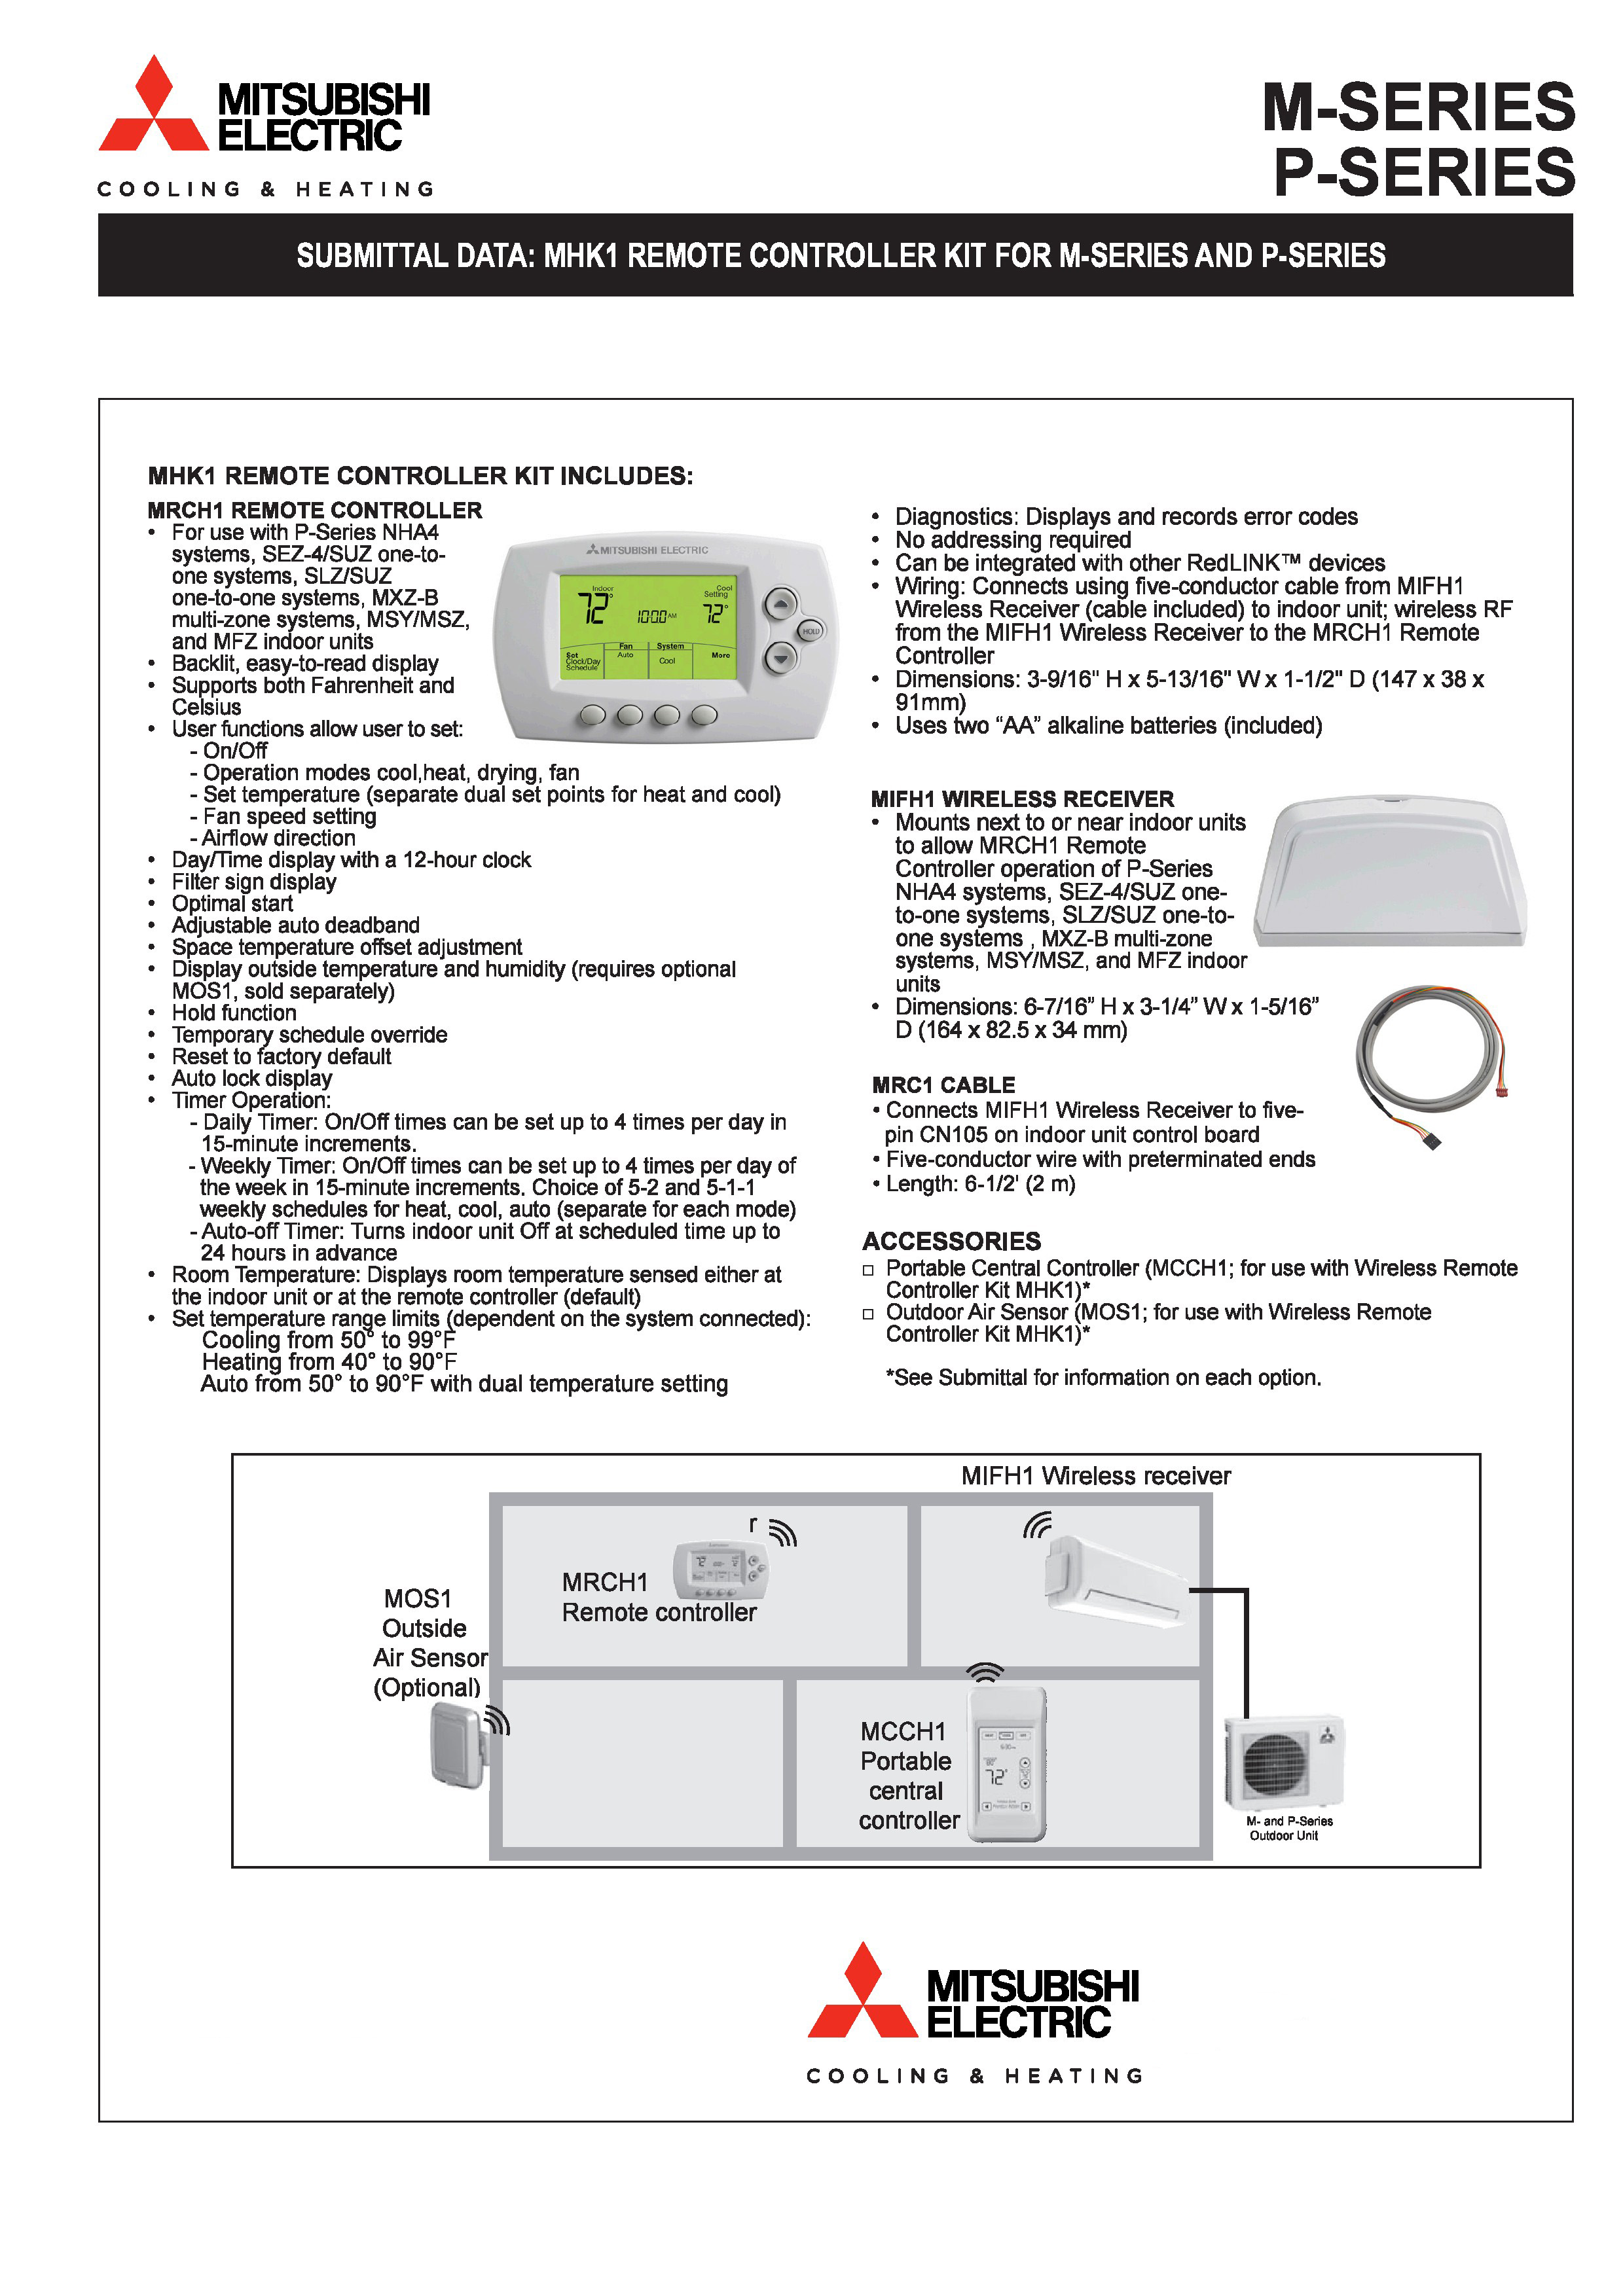 mitsubishi m series wiring diagram mitsubishi mini split mitsubishi wireless wall mounted thermostat mhk1 on mitsubishi m series wiring diagram